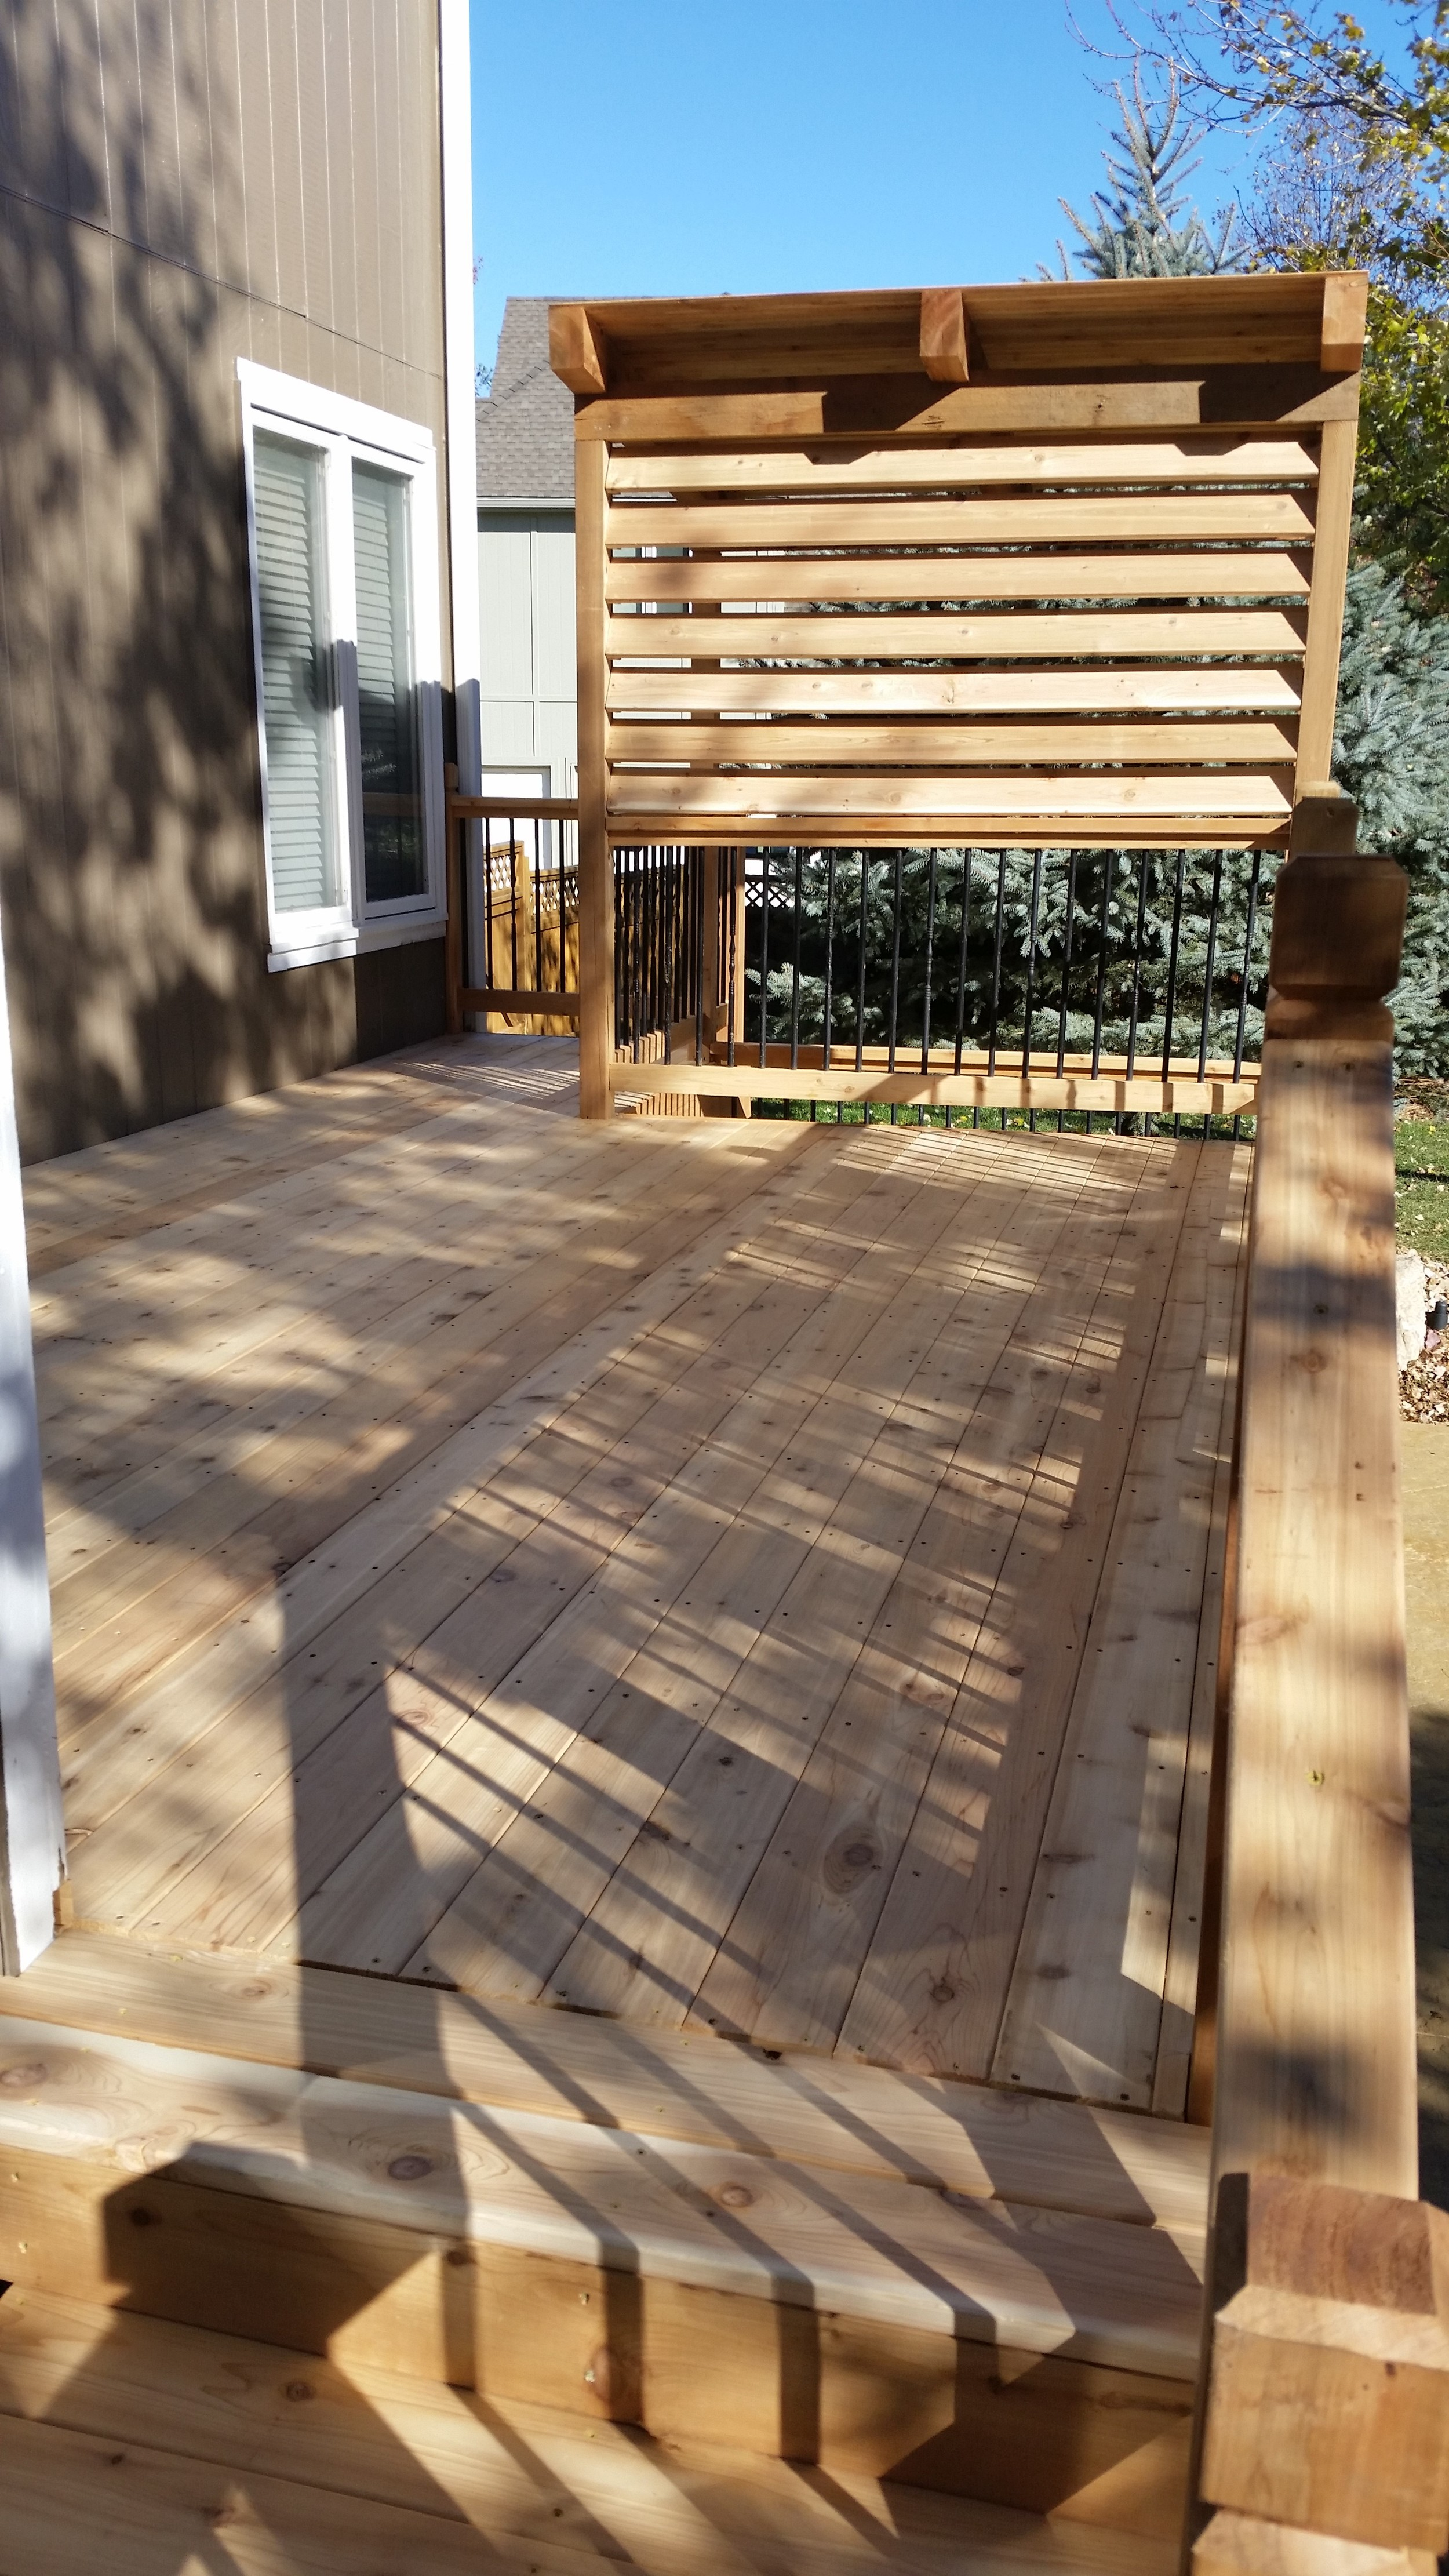 The rebuilt deck and pergola.